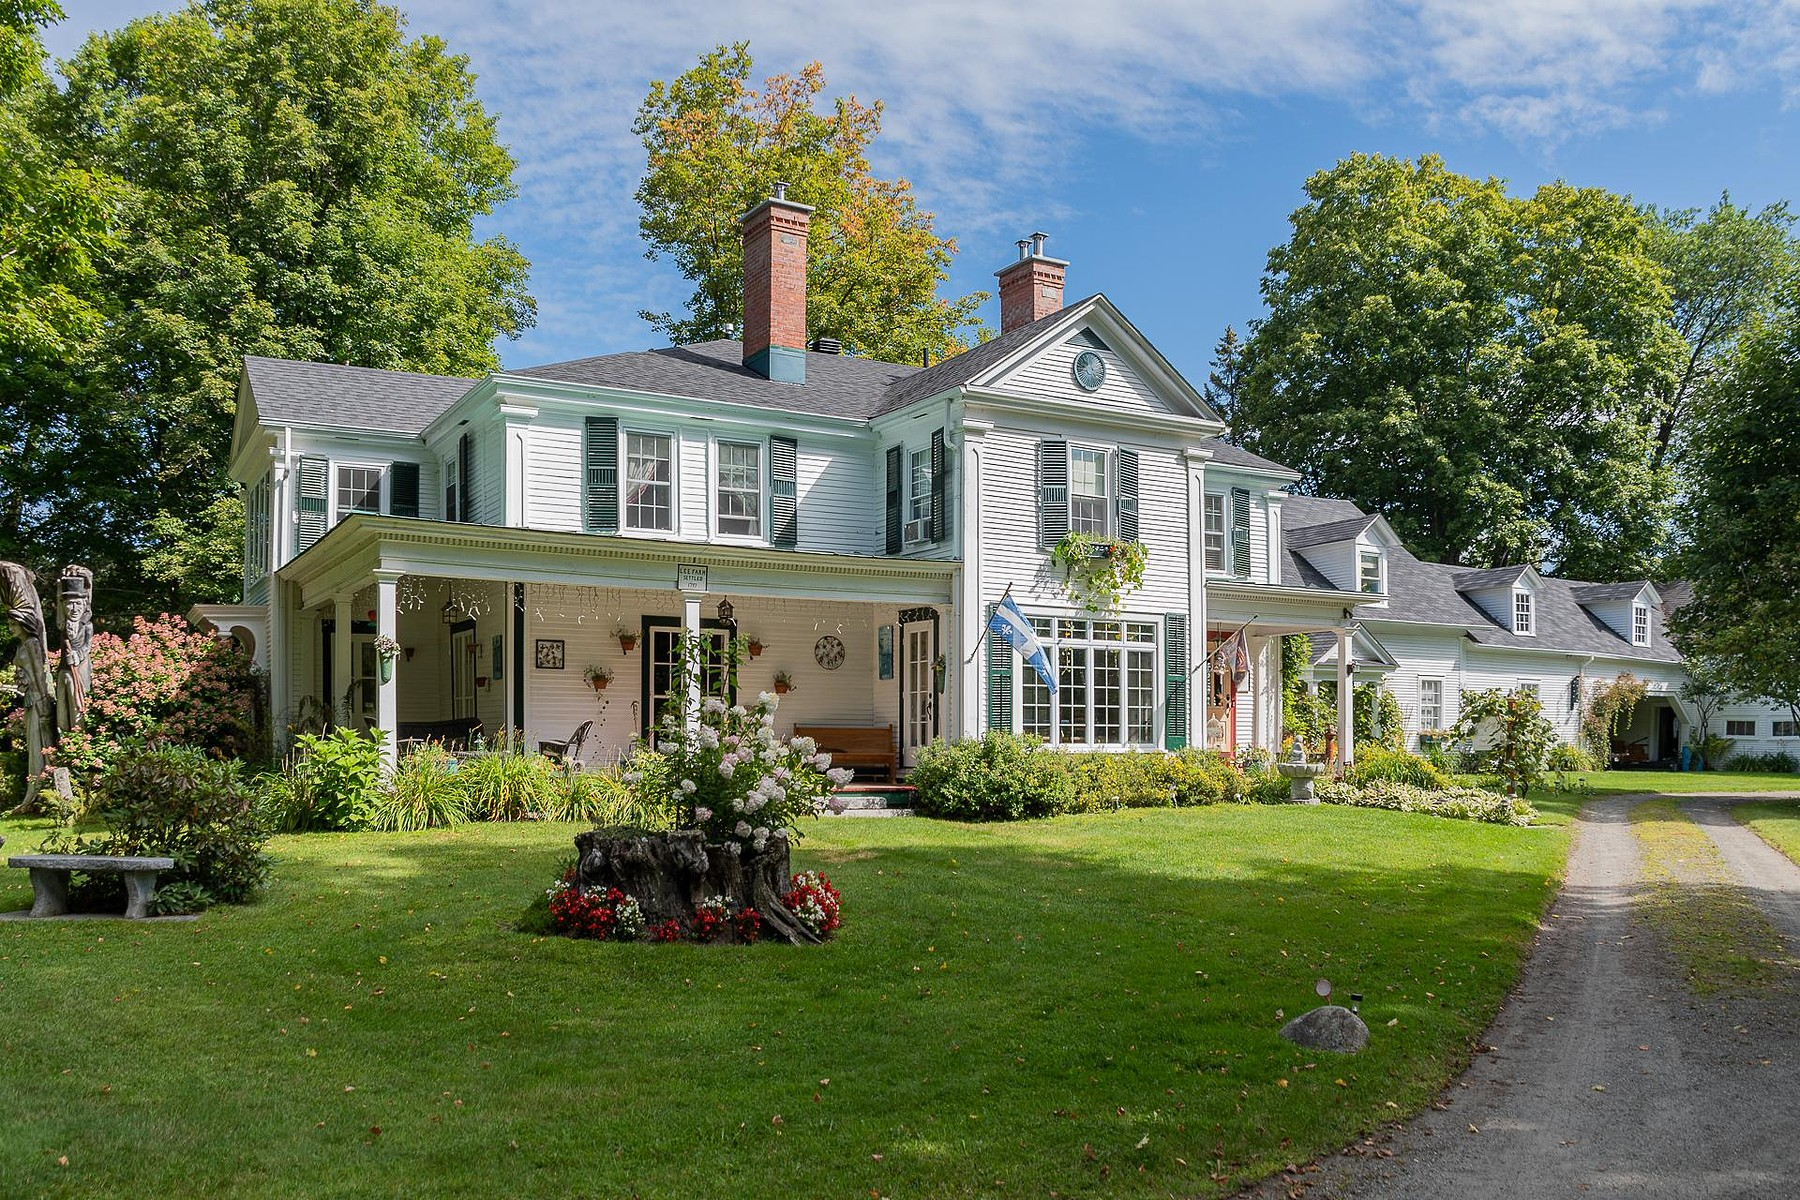 Single Family Homes for Sale at Thousands Of Opportunities 20 Boul. Notre-Dame O. Stanstead Ville, Quebec J0B3E2 Canada